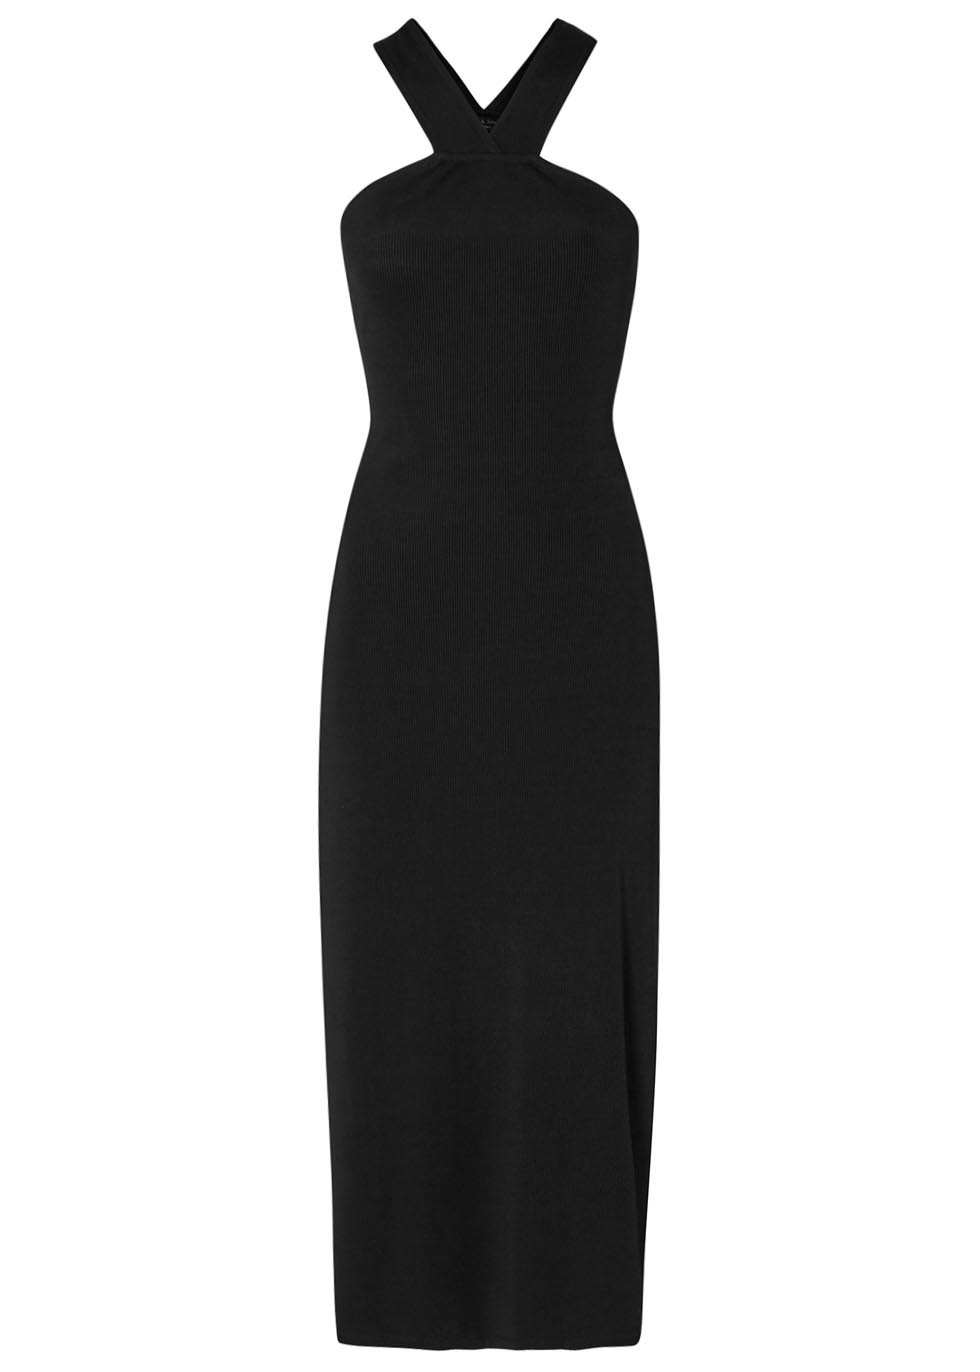 Rachel Black Ribbed Jersey Dress - pattern: plain; sleeve style: sleeveless; style: maxi dress; length: ankle length; predominant colour: black; occasions: evening; fit: body skimming; fibres: viscose/rayon - stretch; sleeve length: sleeveless; pattern type: fabric; texture group: jersey - stretchy/drapey; season: s/s 2016; neckline: high halter neck; wardrobe: event